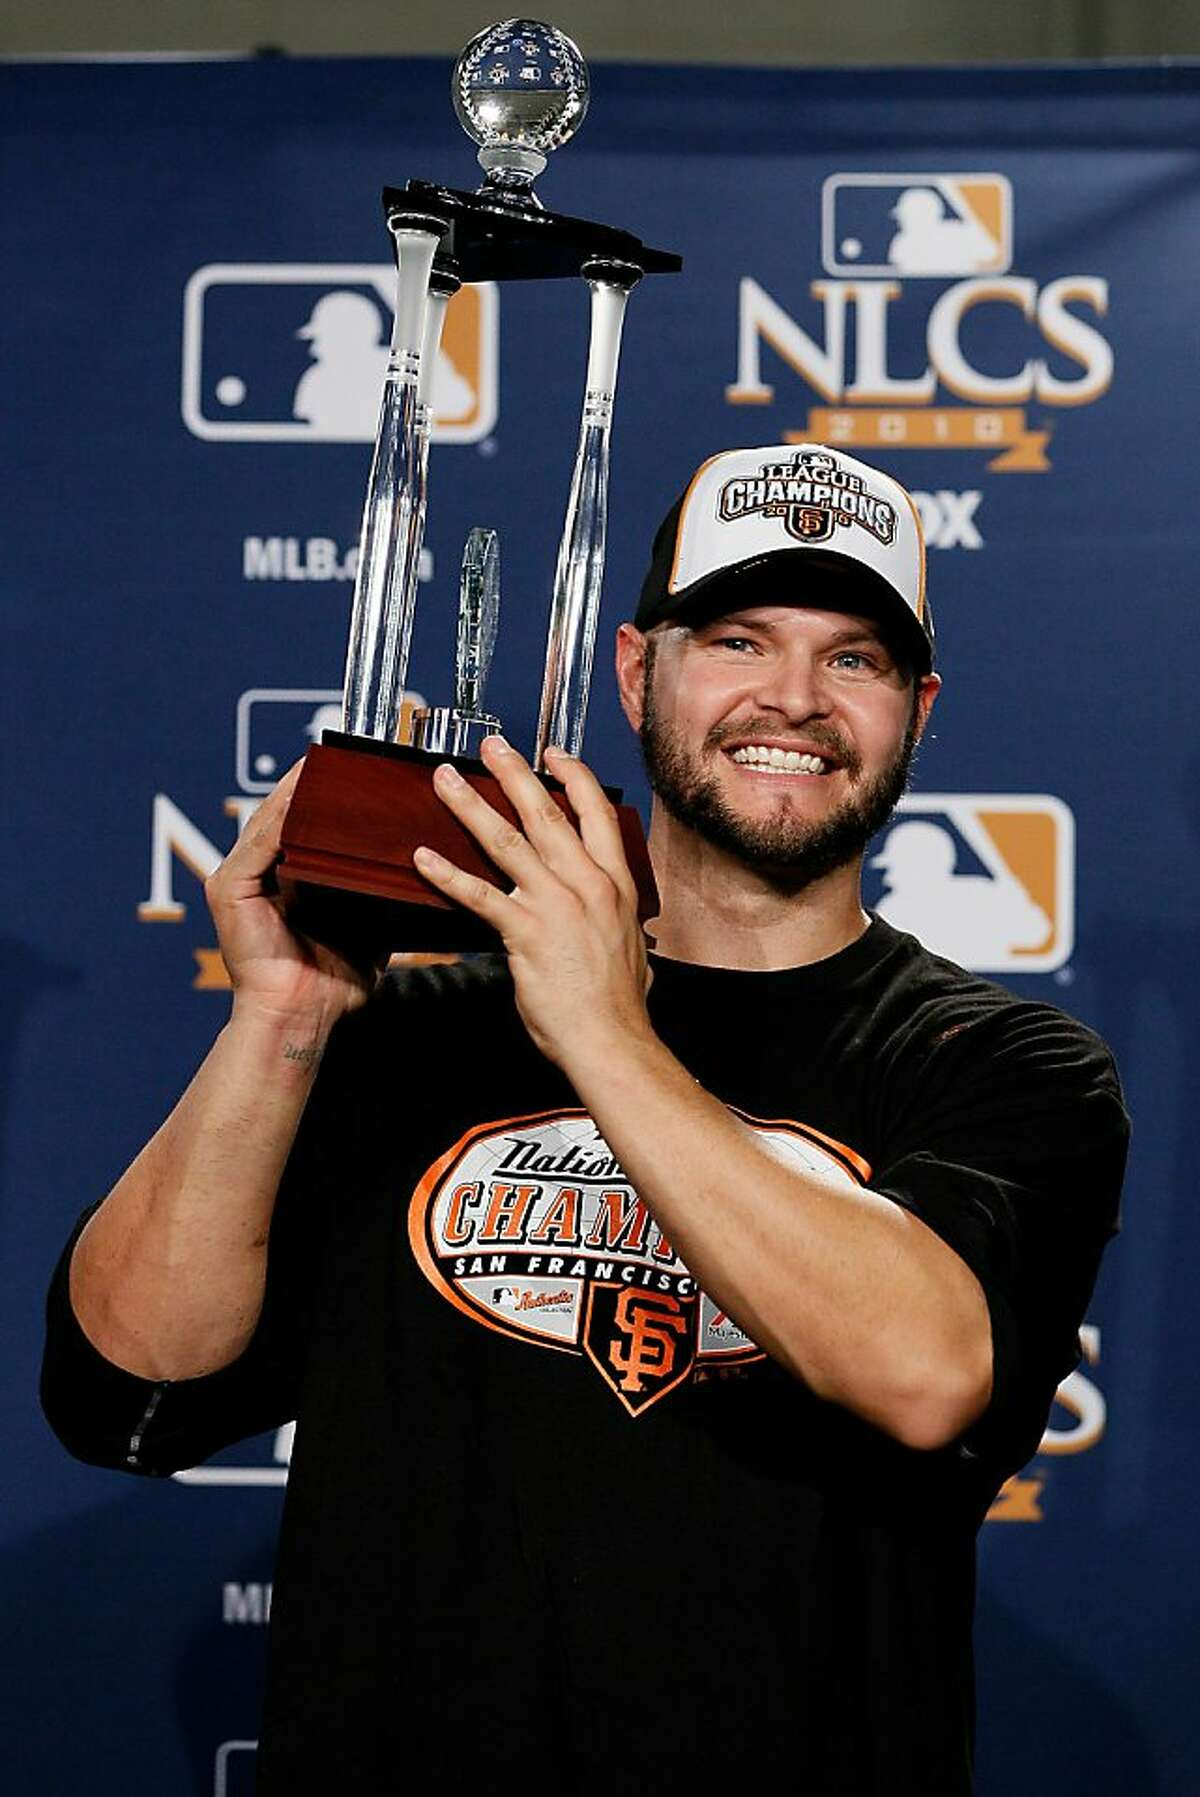 PHILADELPHIA - OCTOBER 23: Cody Ross #13 of the San Francisco Giants celebrates with the NCLS MVP trophy after defeating the Philadelphia Phillies 3-2 and winning the pennant in Game Six of the NLCS during the 2010 MLB Playoffs at Citizens Bank Park on October 23, 2010 in Philadelphia, Pennsylvania.